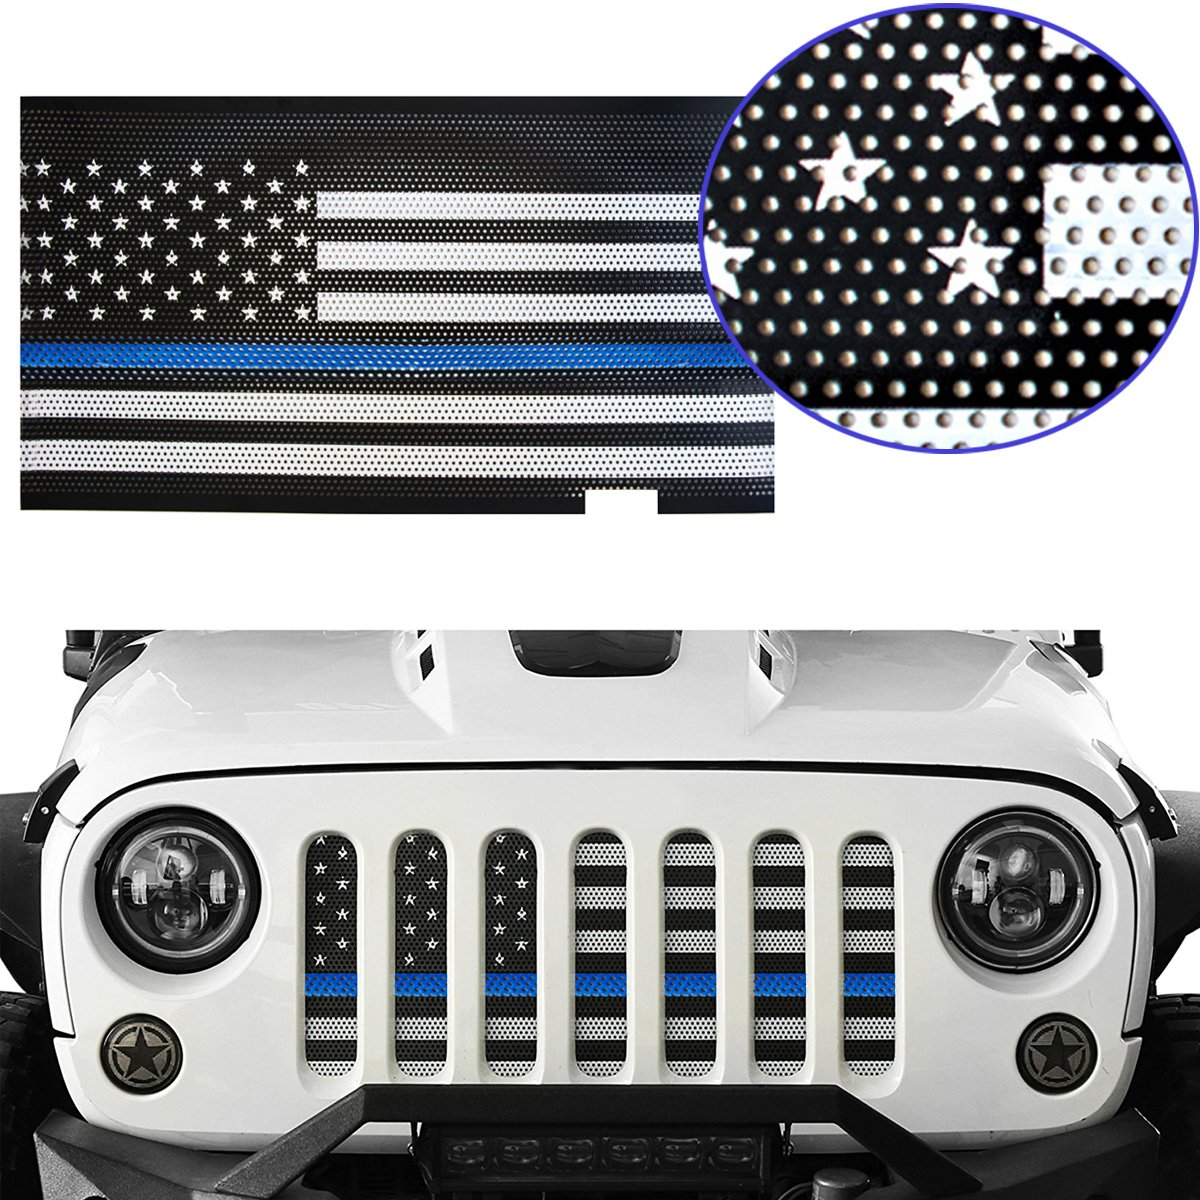 6eaf2a64 Amazon.com: MOEBULB Mesh Grille Insert Steel American Flag Front Grill for  2007-2018 Jeep Wrangler JK & Unlimited 2/4 Door (Thin Blue Line, ...